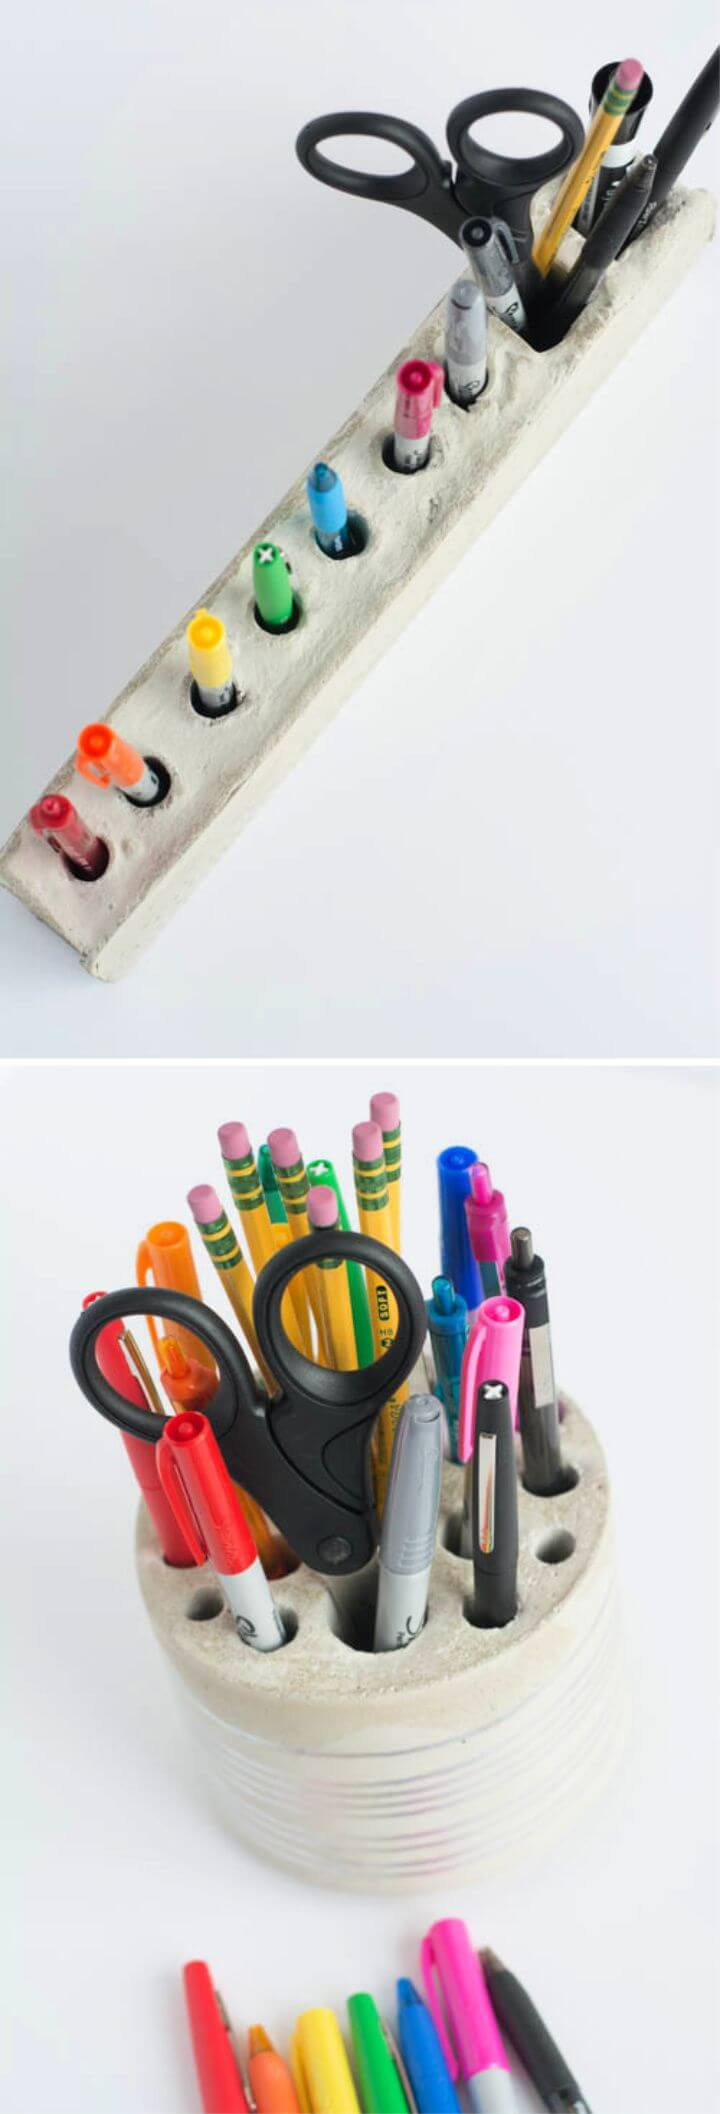 DIY Cement Desk Organizer and Pencil Holder